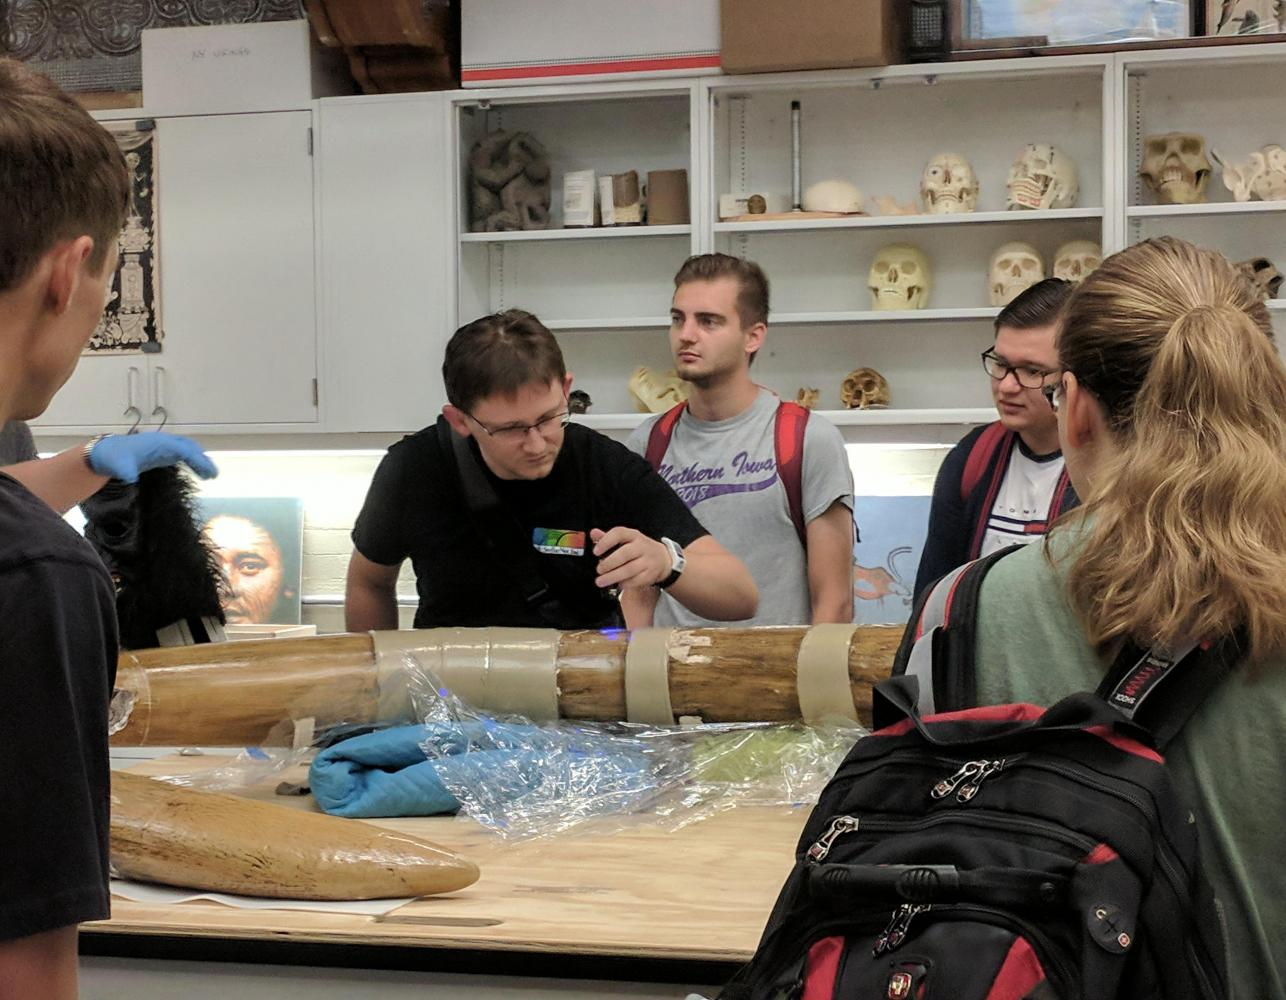 Some UNI students have acquired the opportunity to examine the mastodon tusk first-hand, thanks to a recently received grant. The tusk has been in possession of the UNI Museum for almost 100 years.